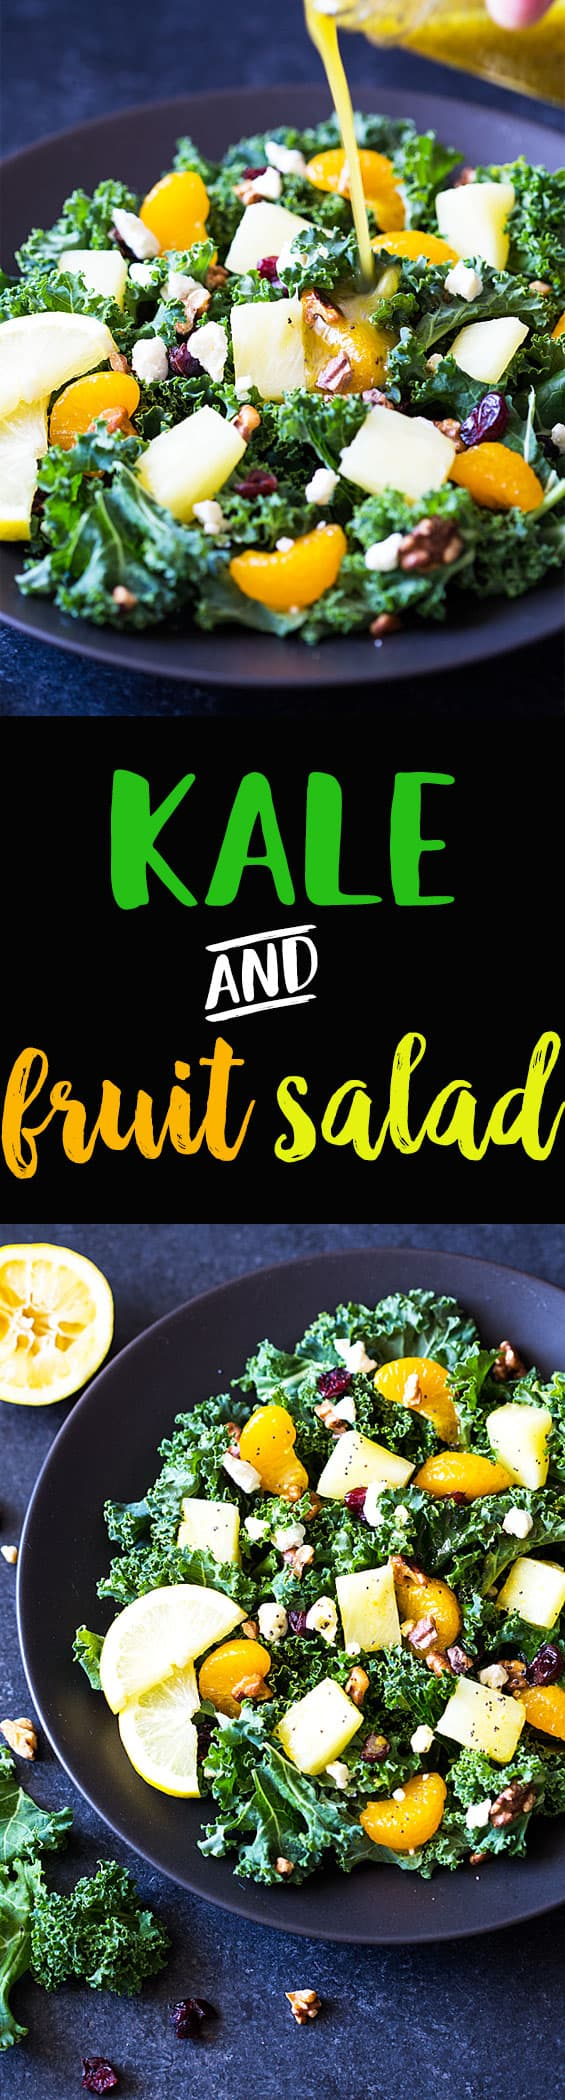 Kale and Fruit salad with a Lemon Poppy Seed Vinaigrette - A hearty, healthy and satisfying salad!